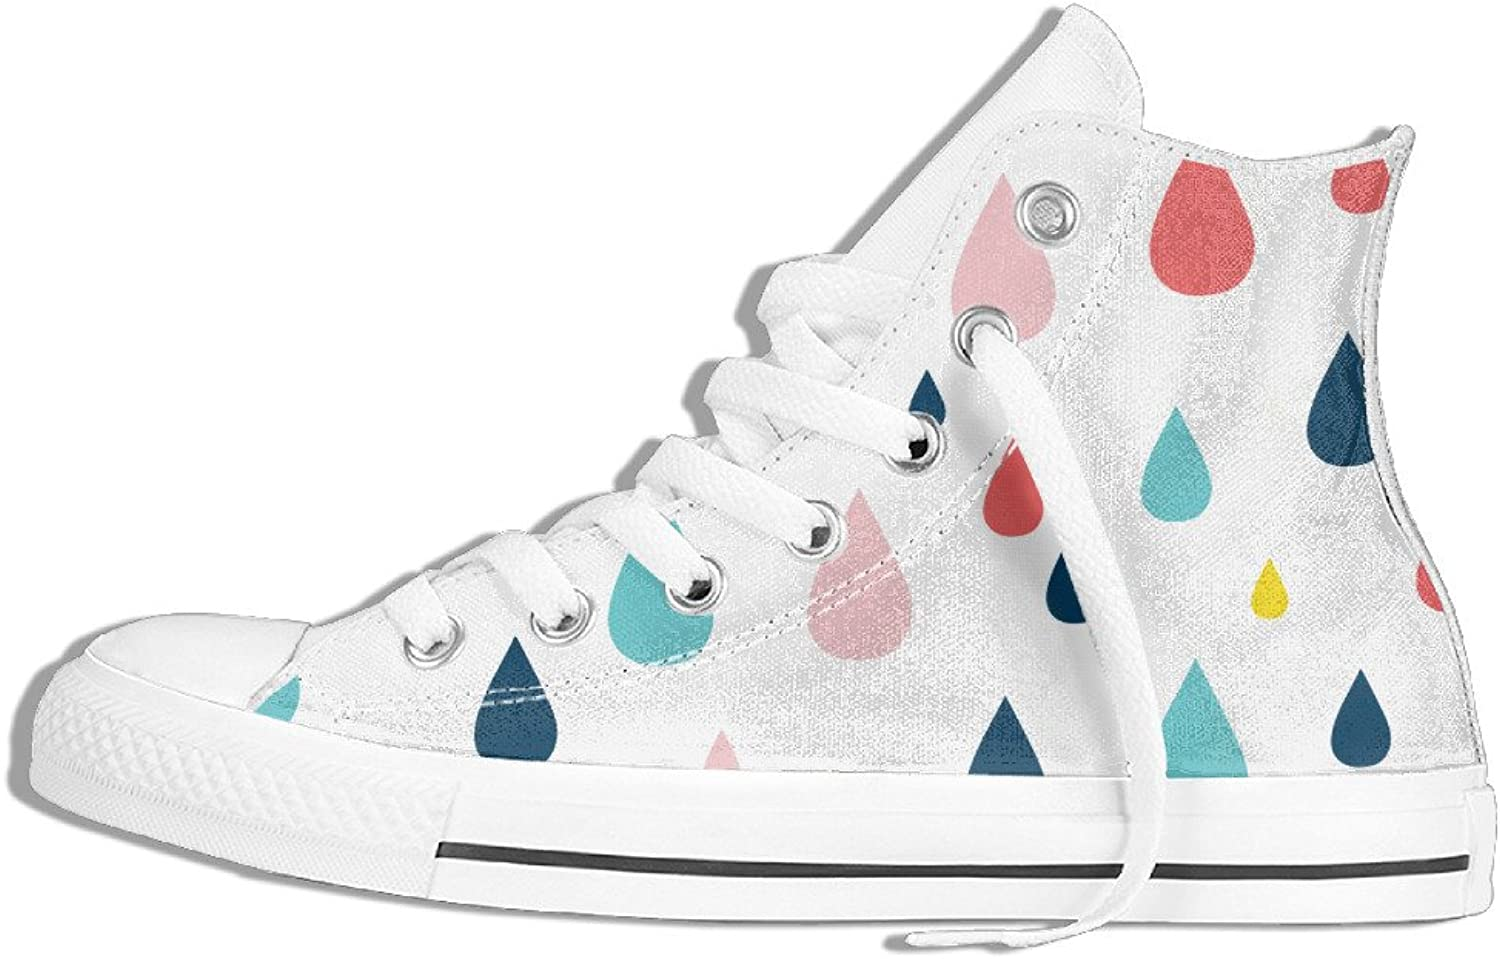 Efbj Water Drops Unisex Comfortable High Top Flat Canvas shoes for Men and Women